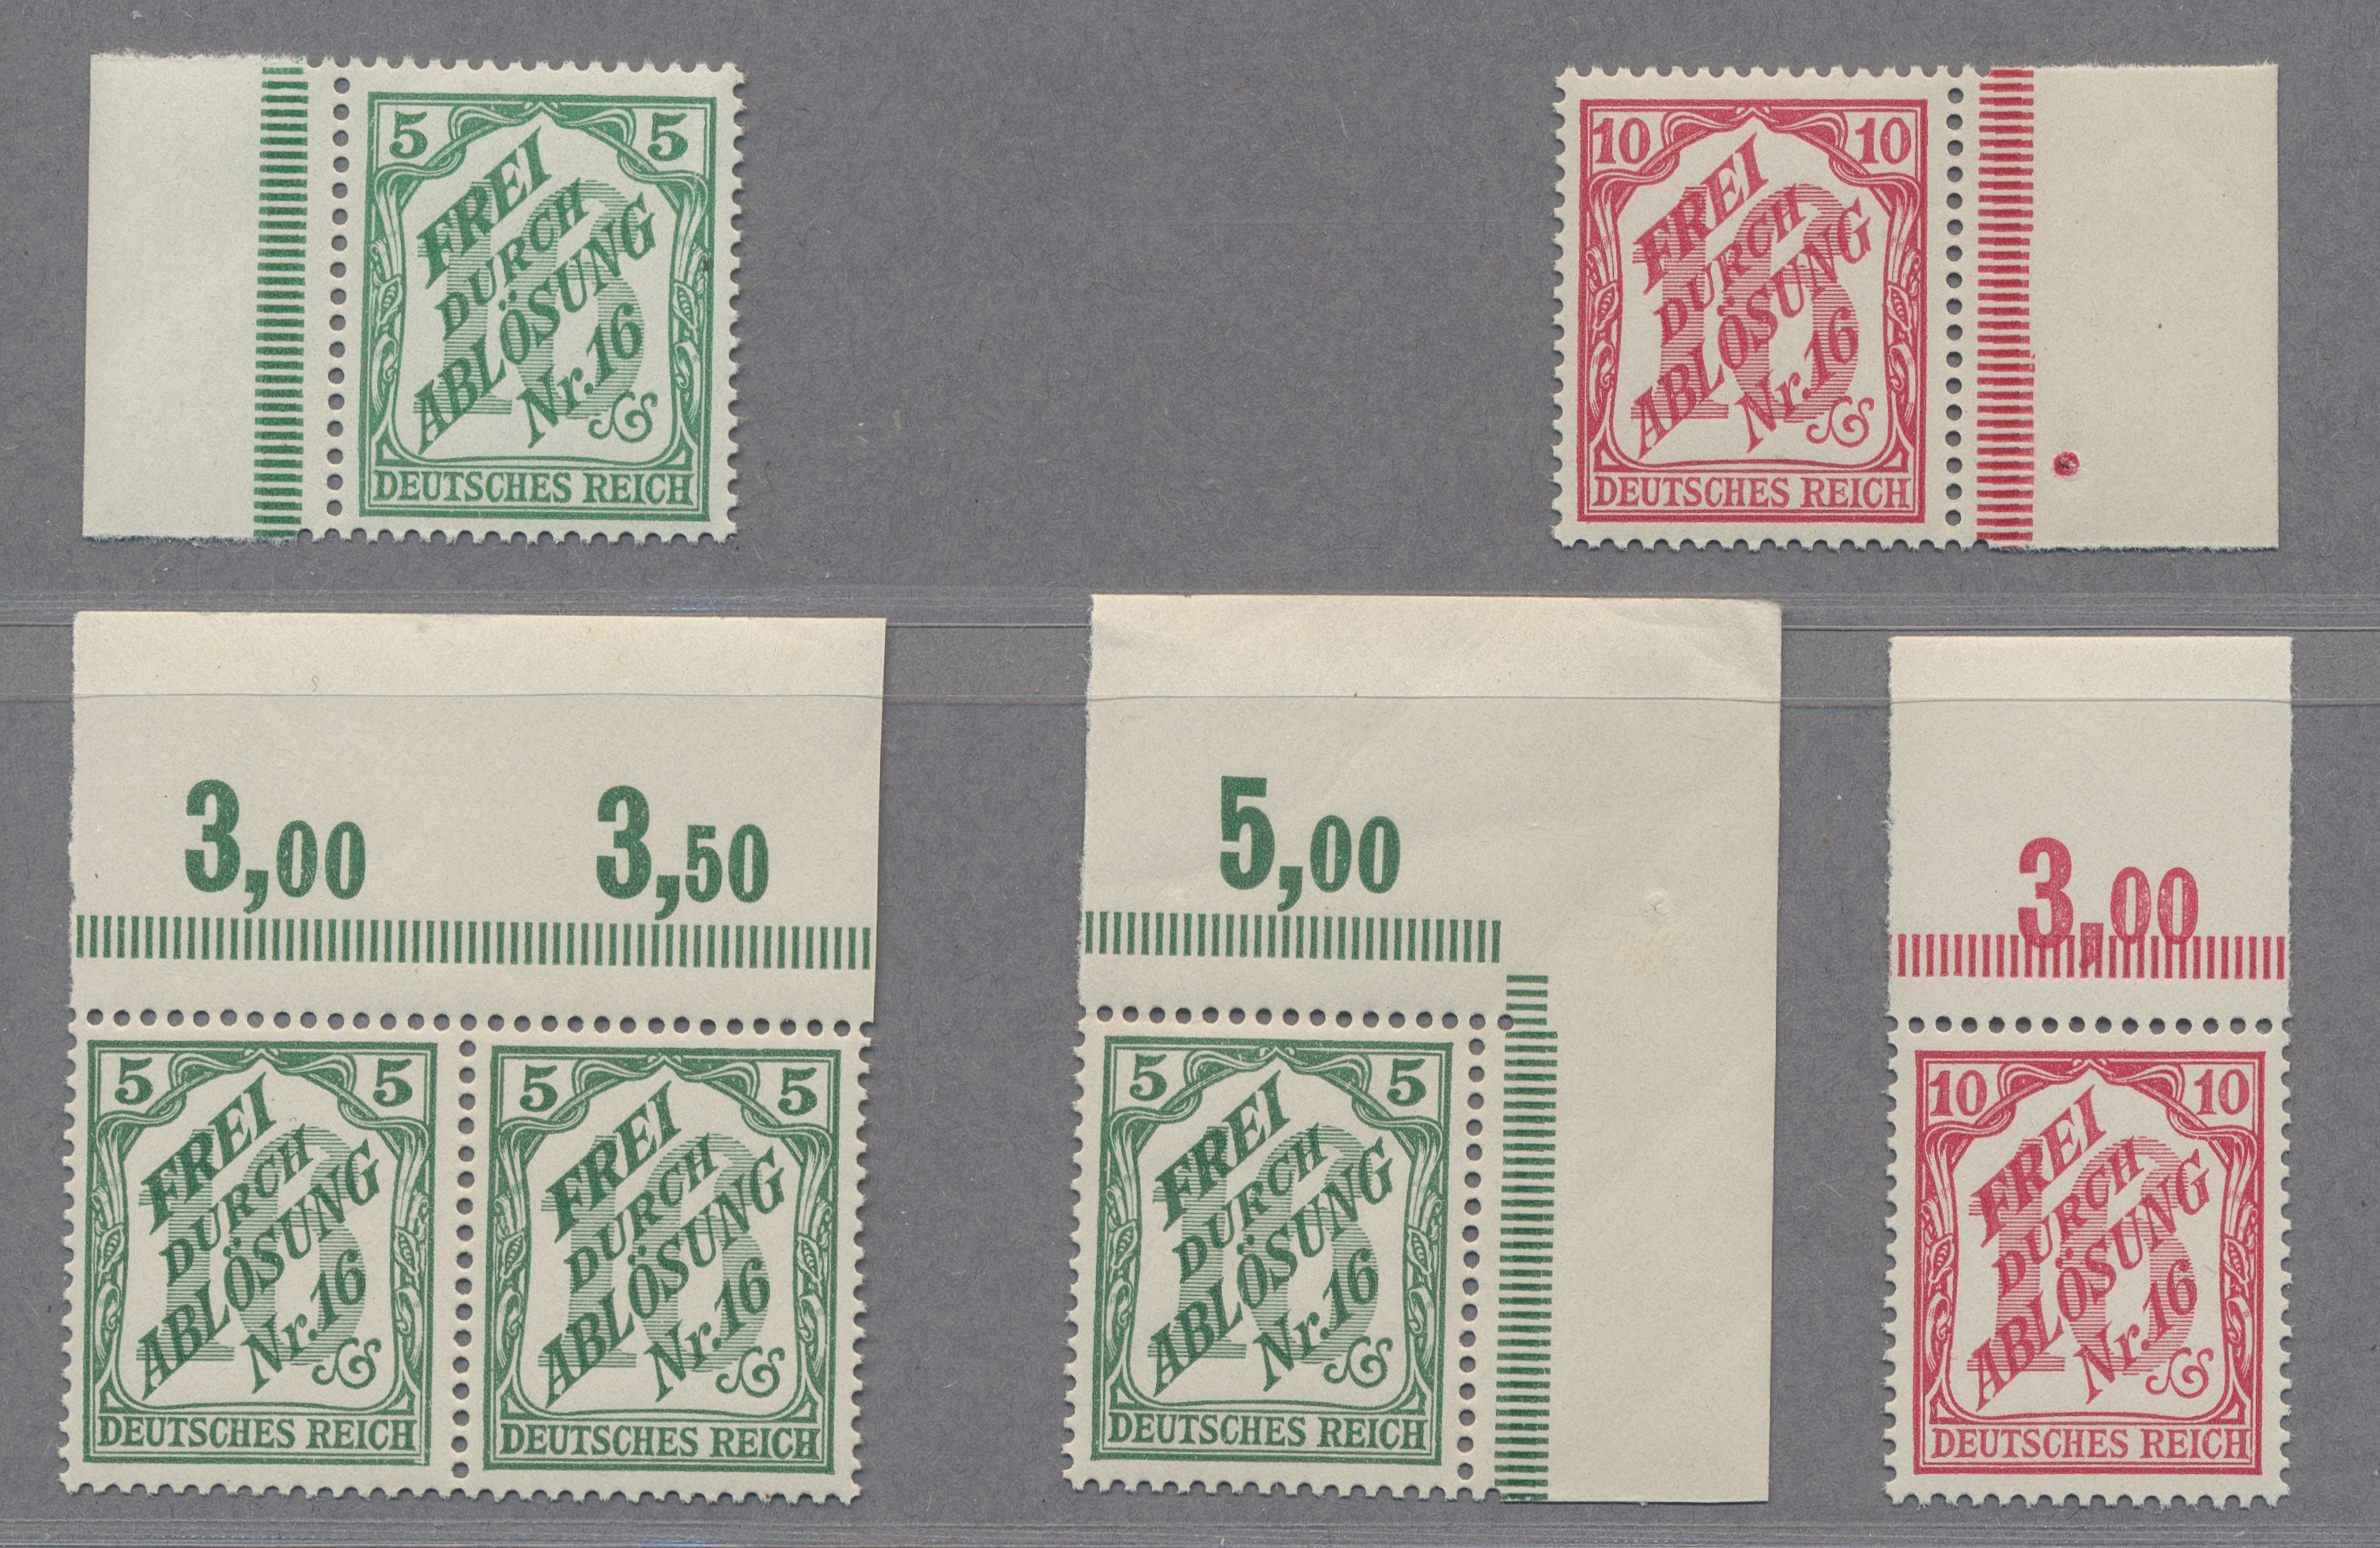 Lot 37050 - Deutsches Reich - Dienstmarken  -  Auktionshaus Christoph Gärtner GmbH & Co. KG Collections Germany,  Collections Supplement, Surprise boxes #39 Day 7